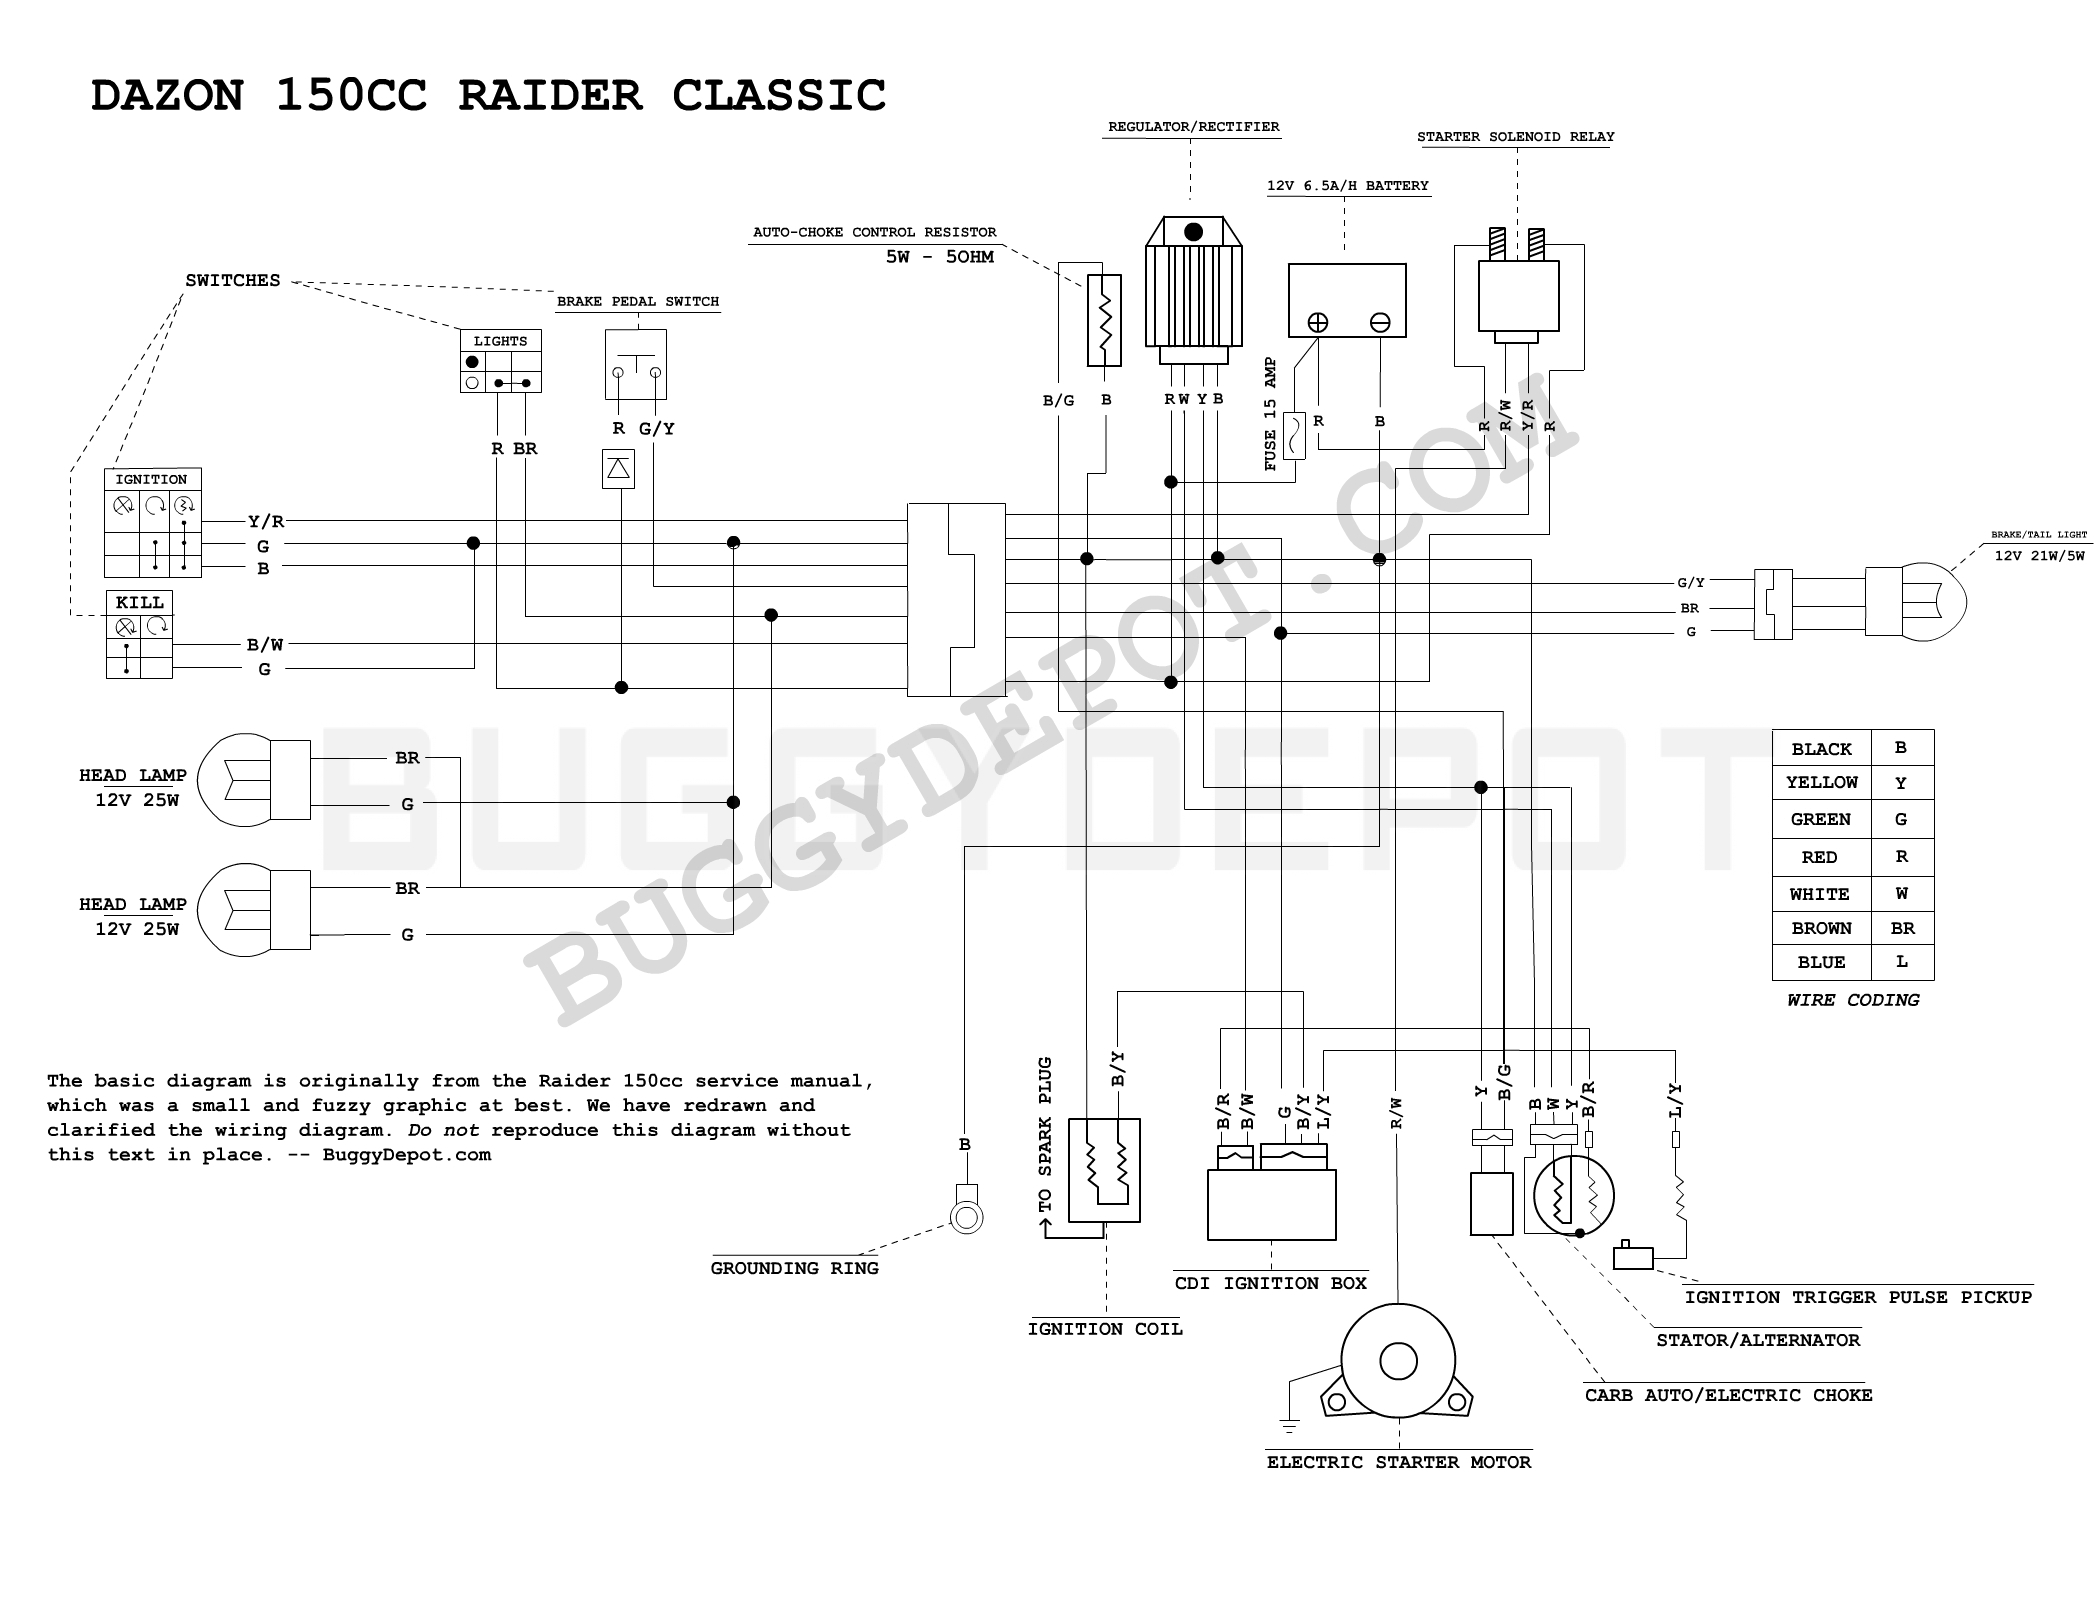 Gy6 Ignition Wiring Diagram 150 Cc Http Wire 20022004 Ford F250 Curt T Connector Harness 55265 Dazon Raider Classic Buggy Depot Technical Center Rh Buggydepot Com